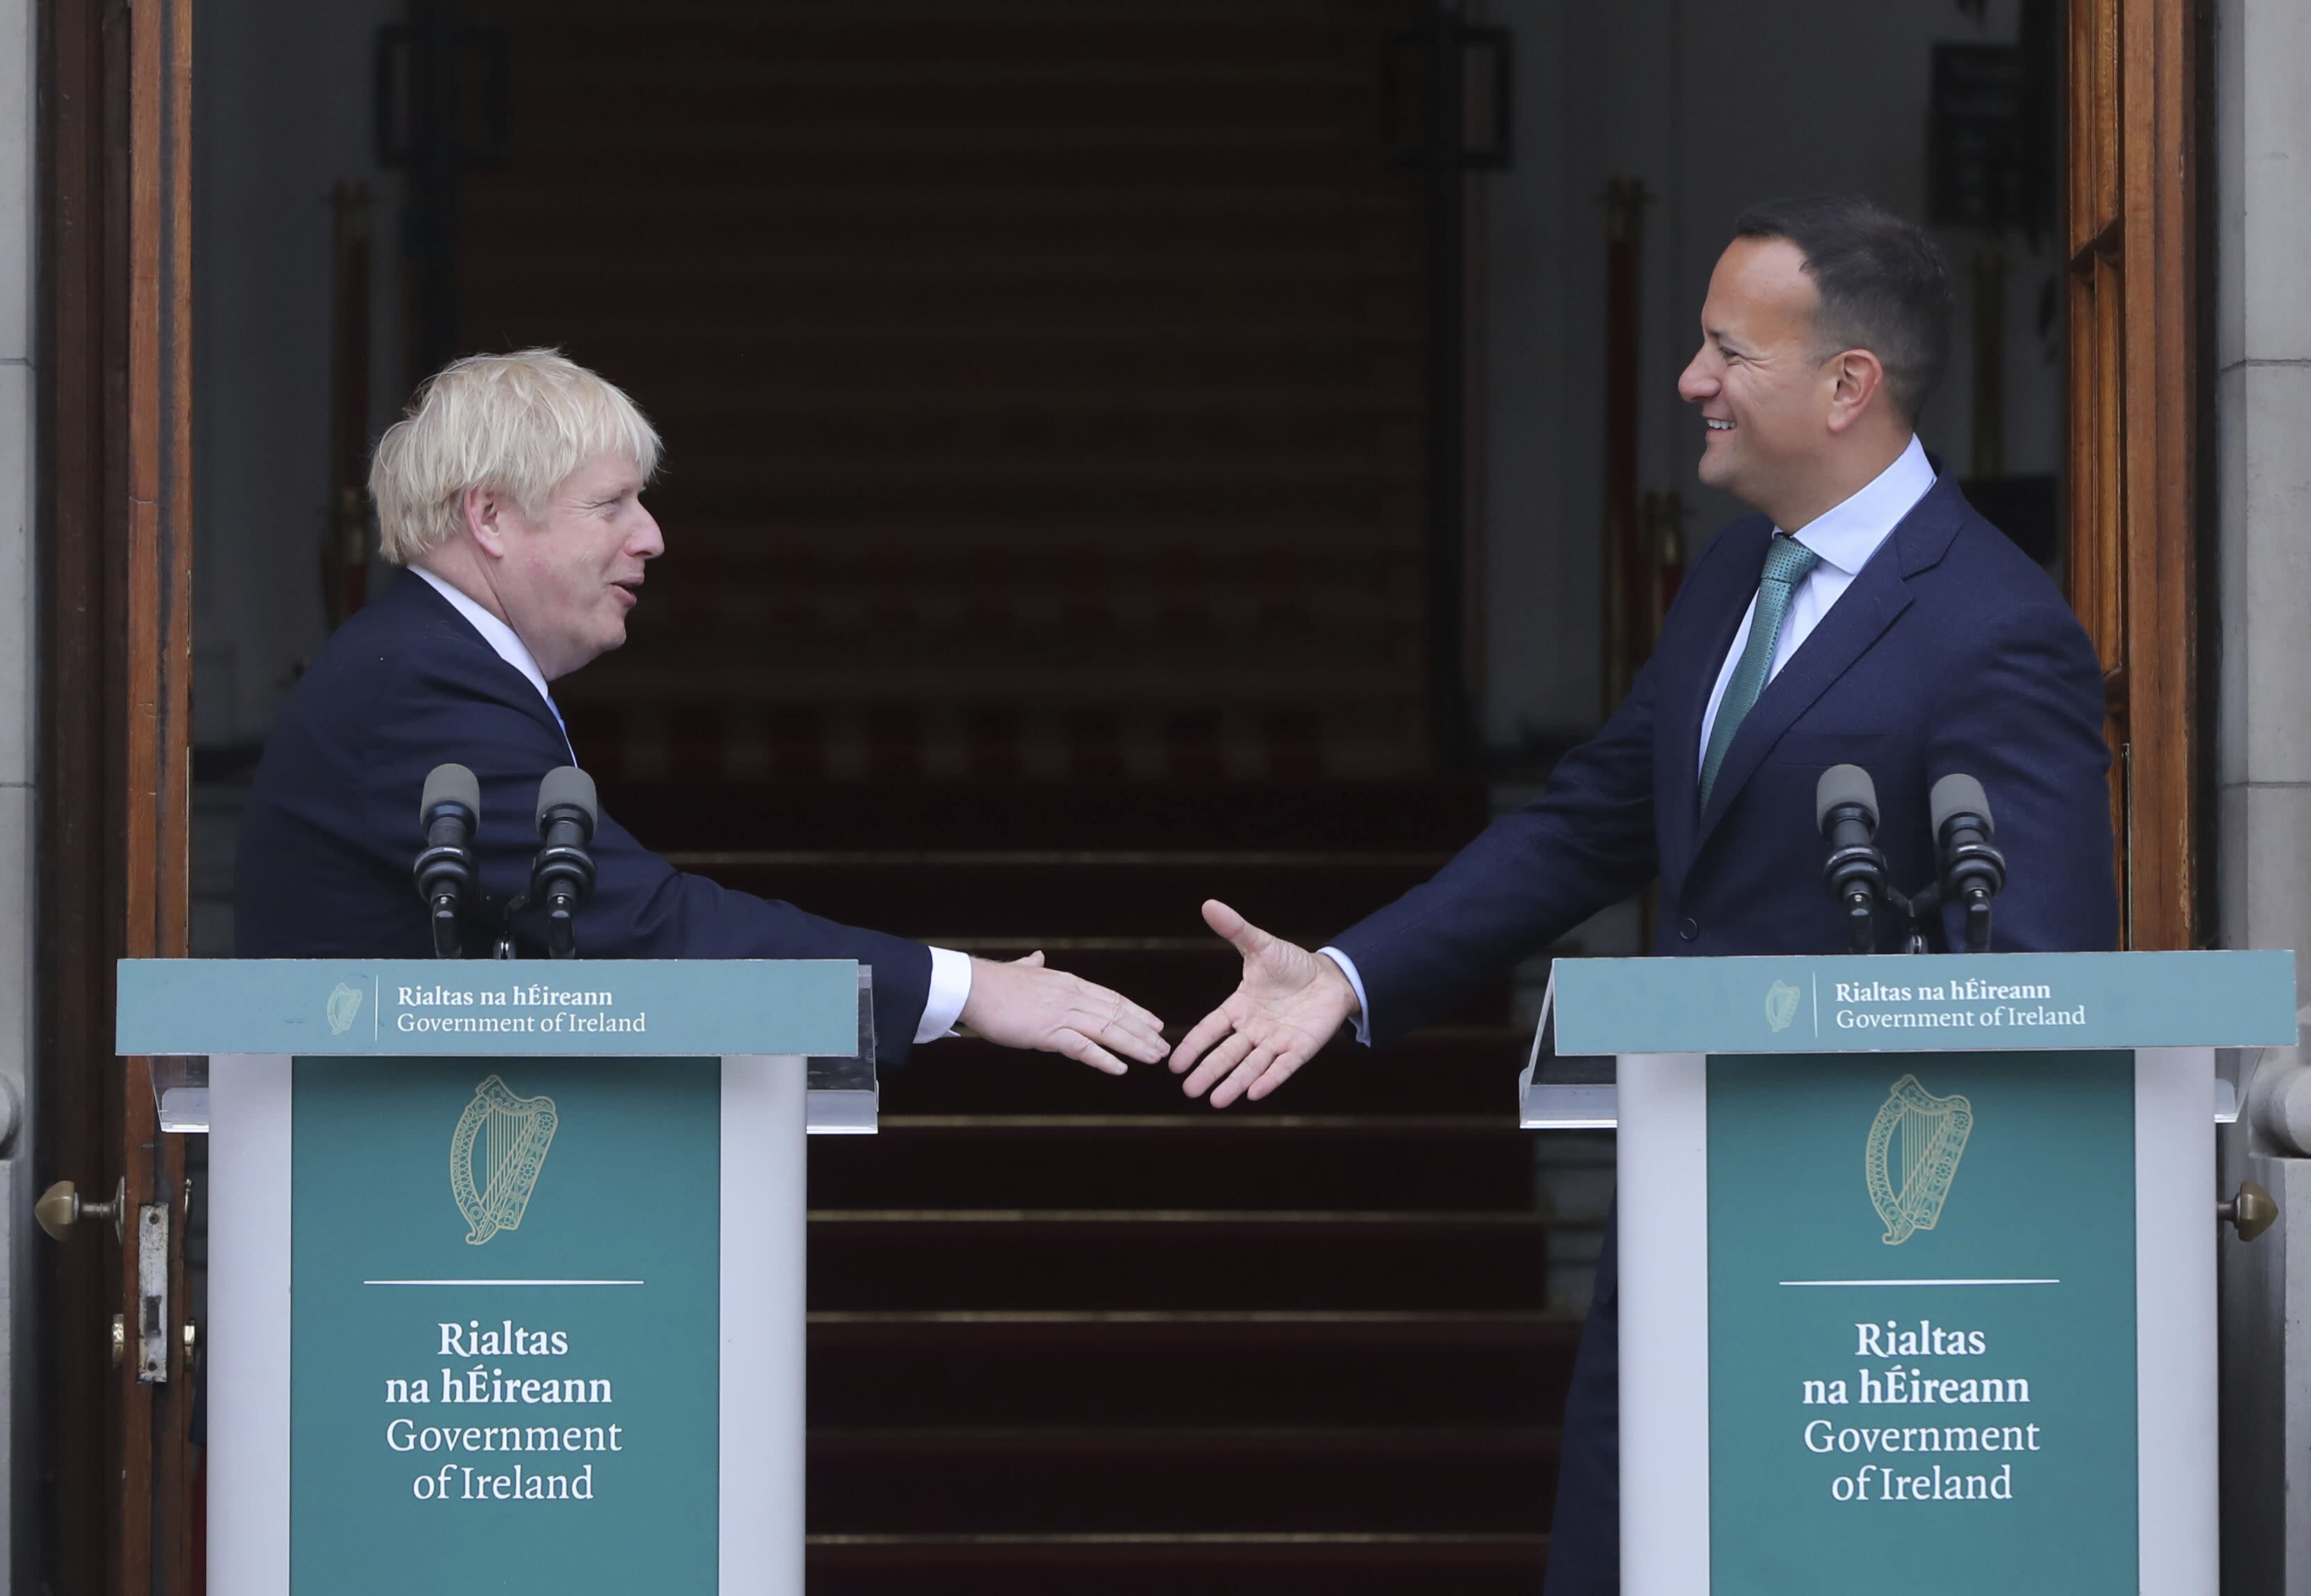 Johnson 'rejected NI-only backstop' in meeting - DUP